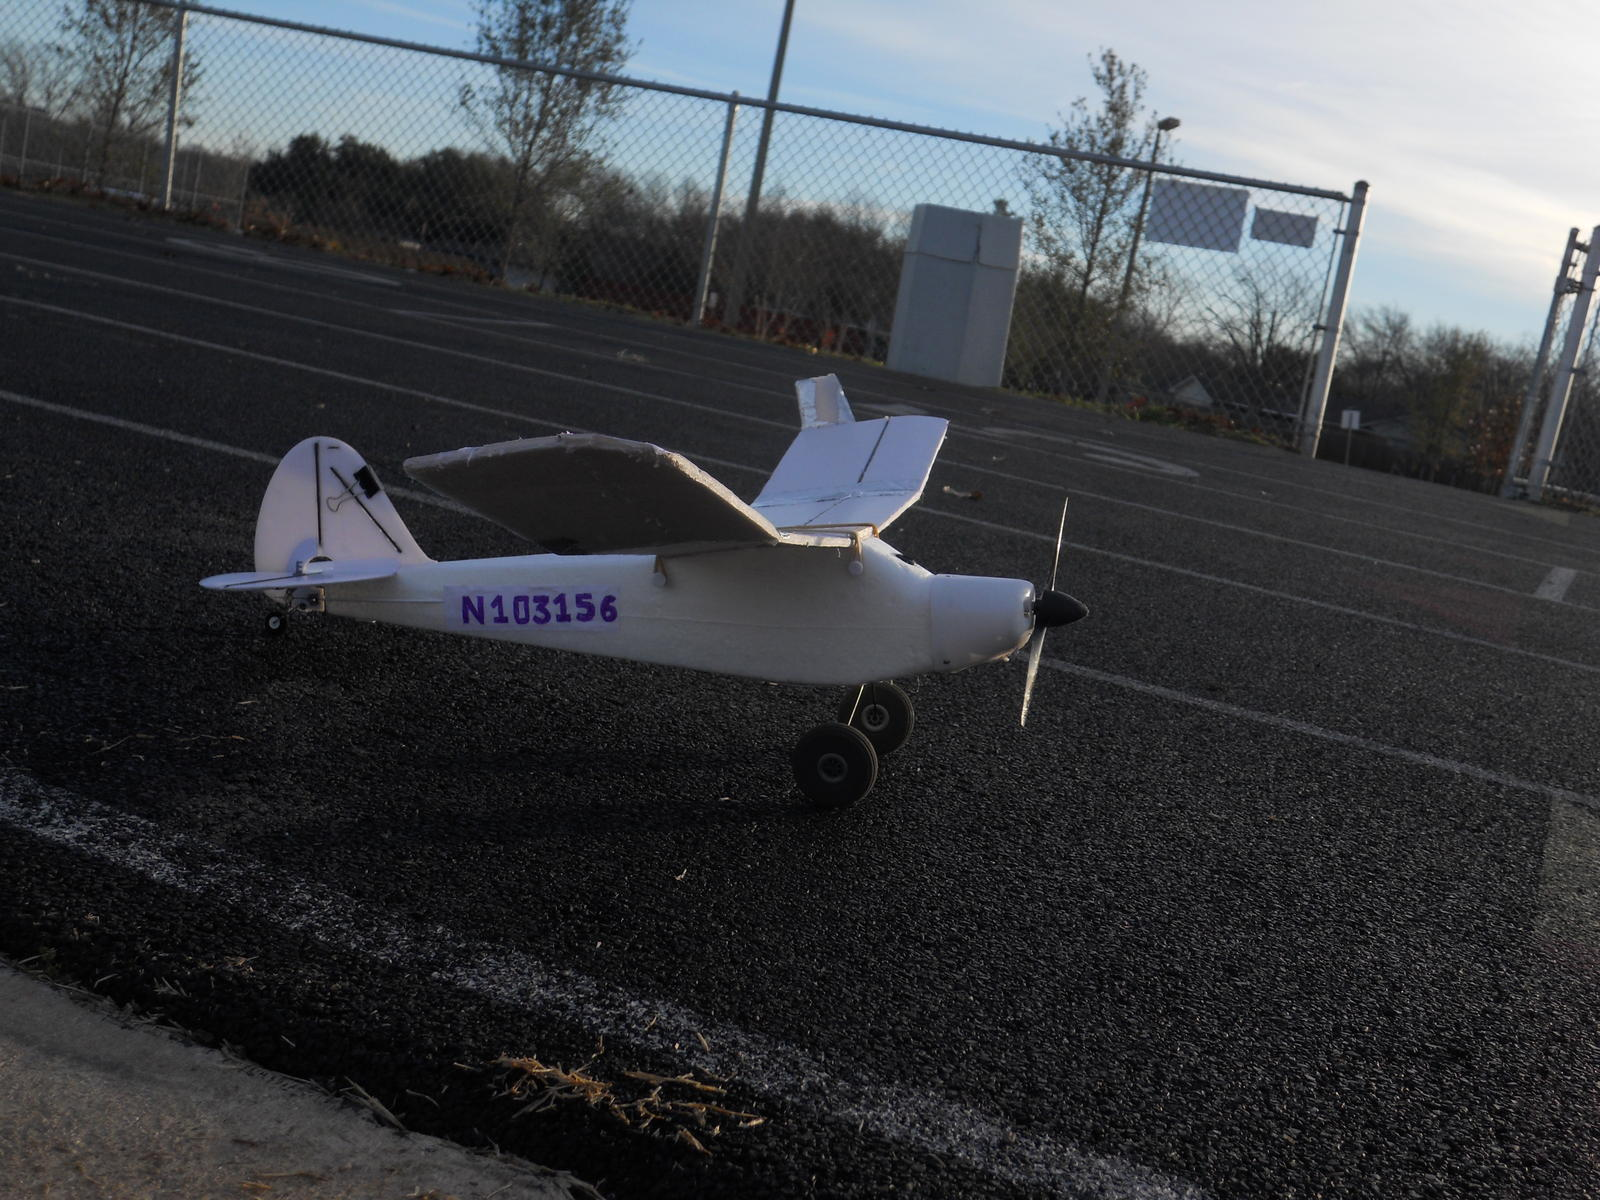 Name: DSCN0940.jpg Views: 173 Size: 282.2 KB Description: As the picture shown, there're some modifications: 1. Carbon Fiber Reinforced surfaces and hinge lines. 2. Bush Wheels 3. Polyhedral wing design for more lift after stall 4. Steerable Tail Wheel